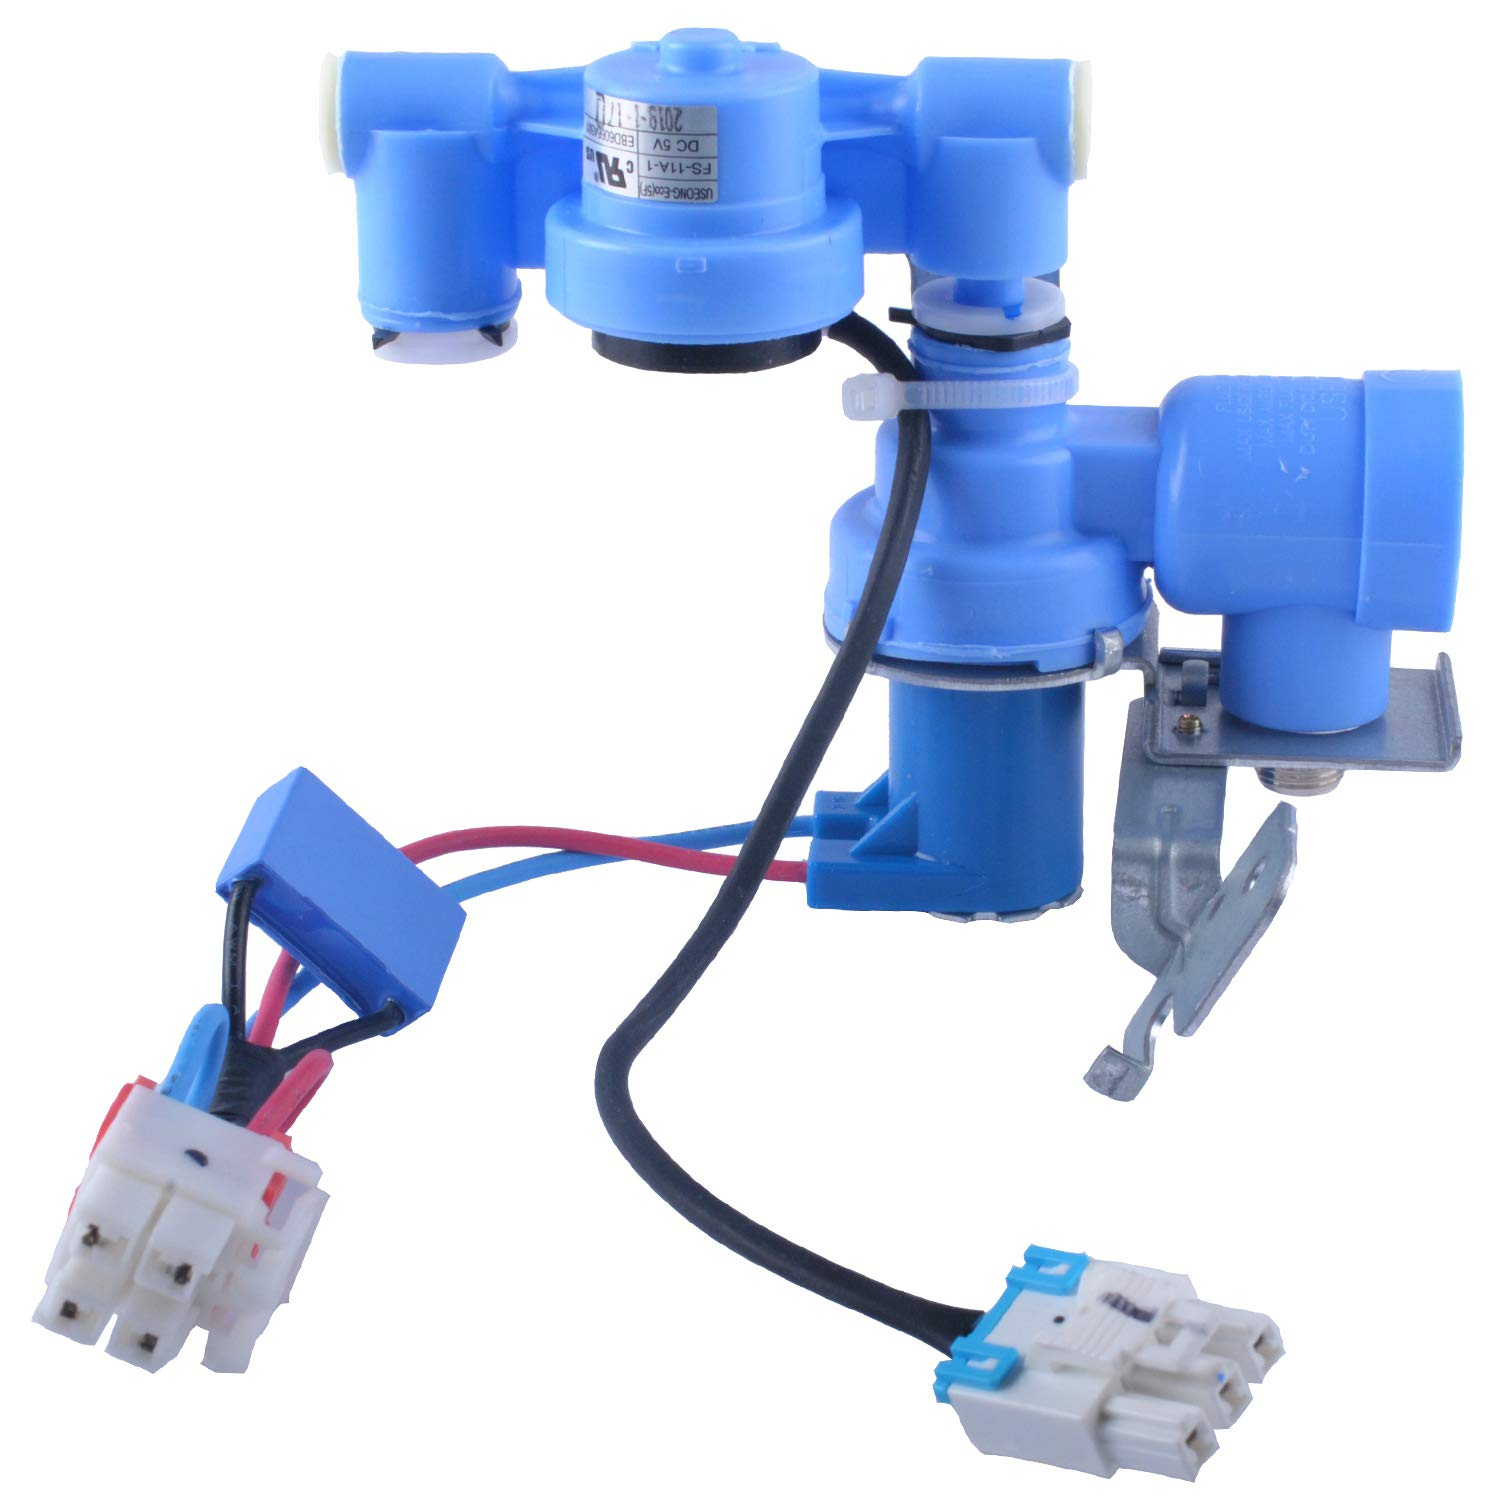 Gekufa AJU72992601 Water Inlet Valve Replacement Compatible with LG Refrigerator Replace 5220JB2009A, AP4671476, 5221JA2011J